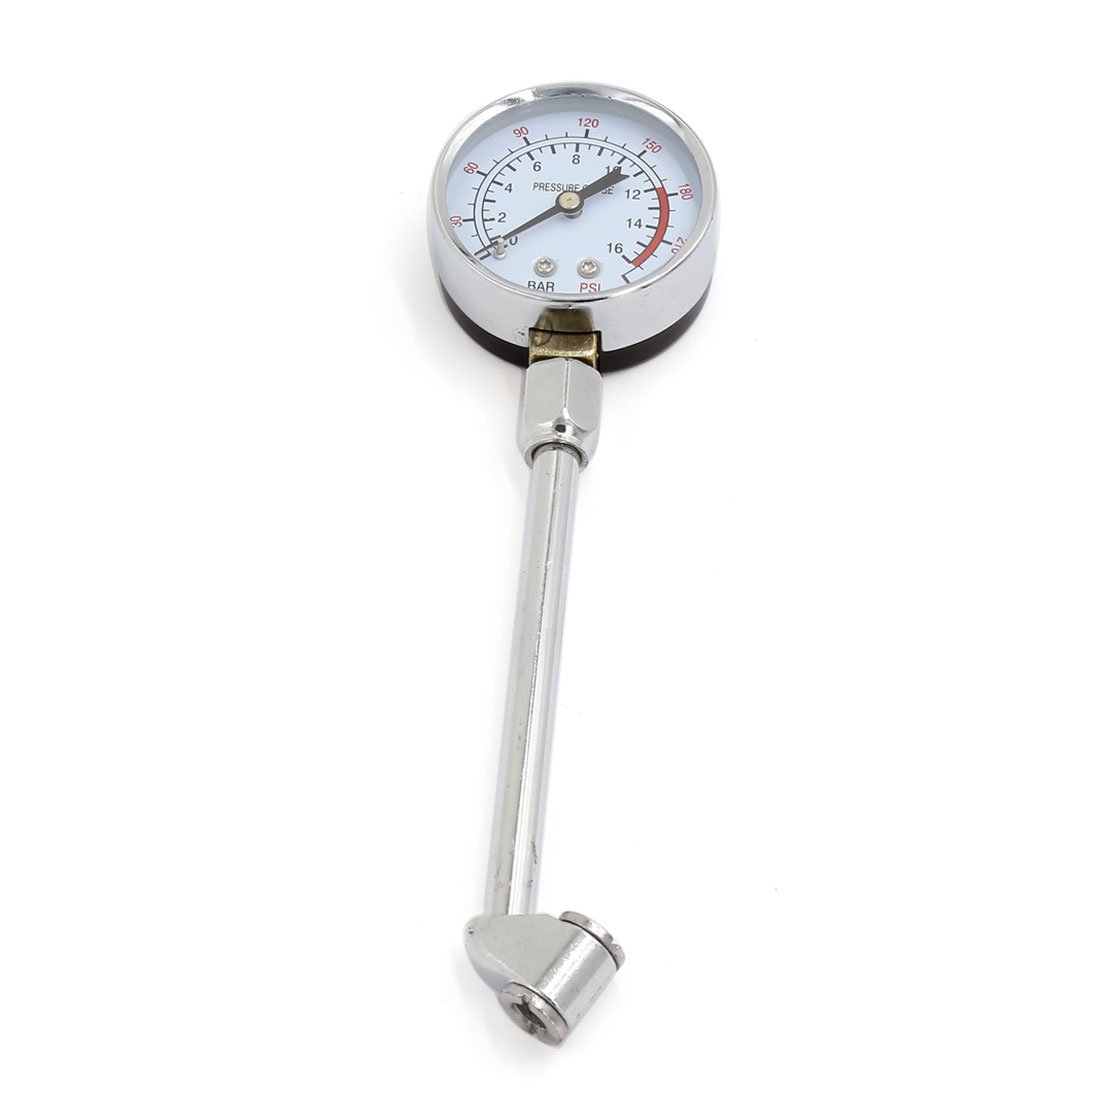 Car Truck Motorcycle Tyre Tire Air Pressure Gauge Dial Meter Tester 0-240 PSI